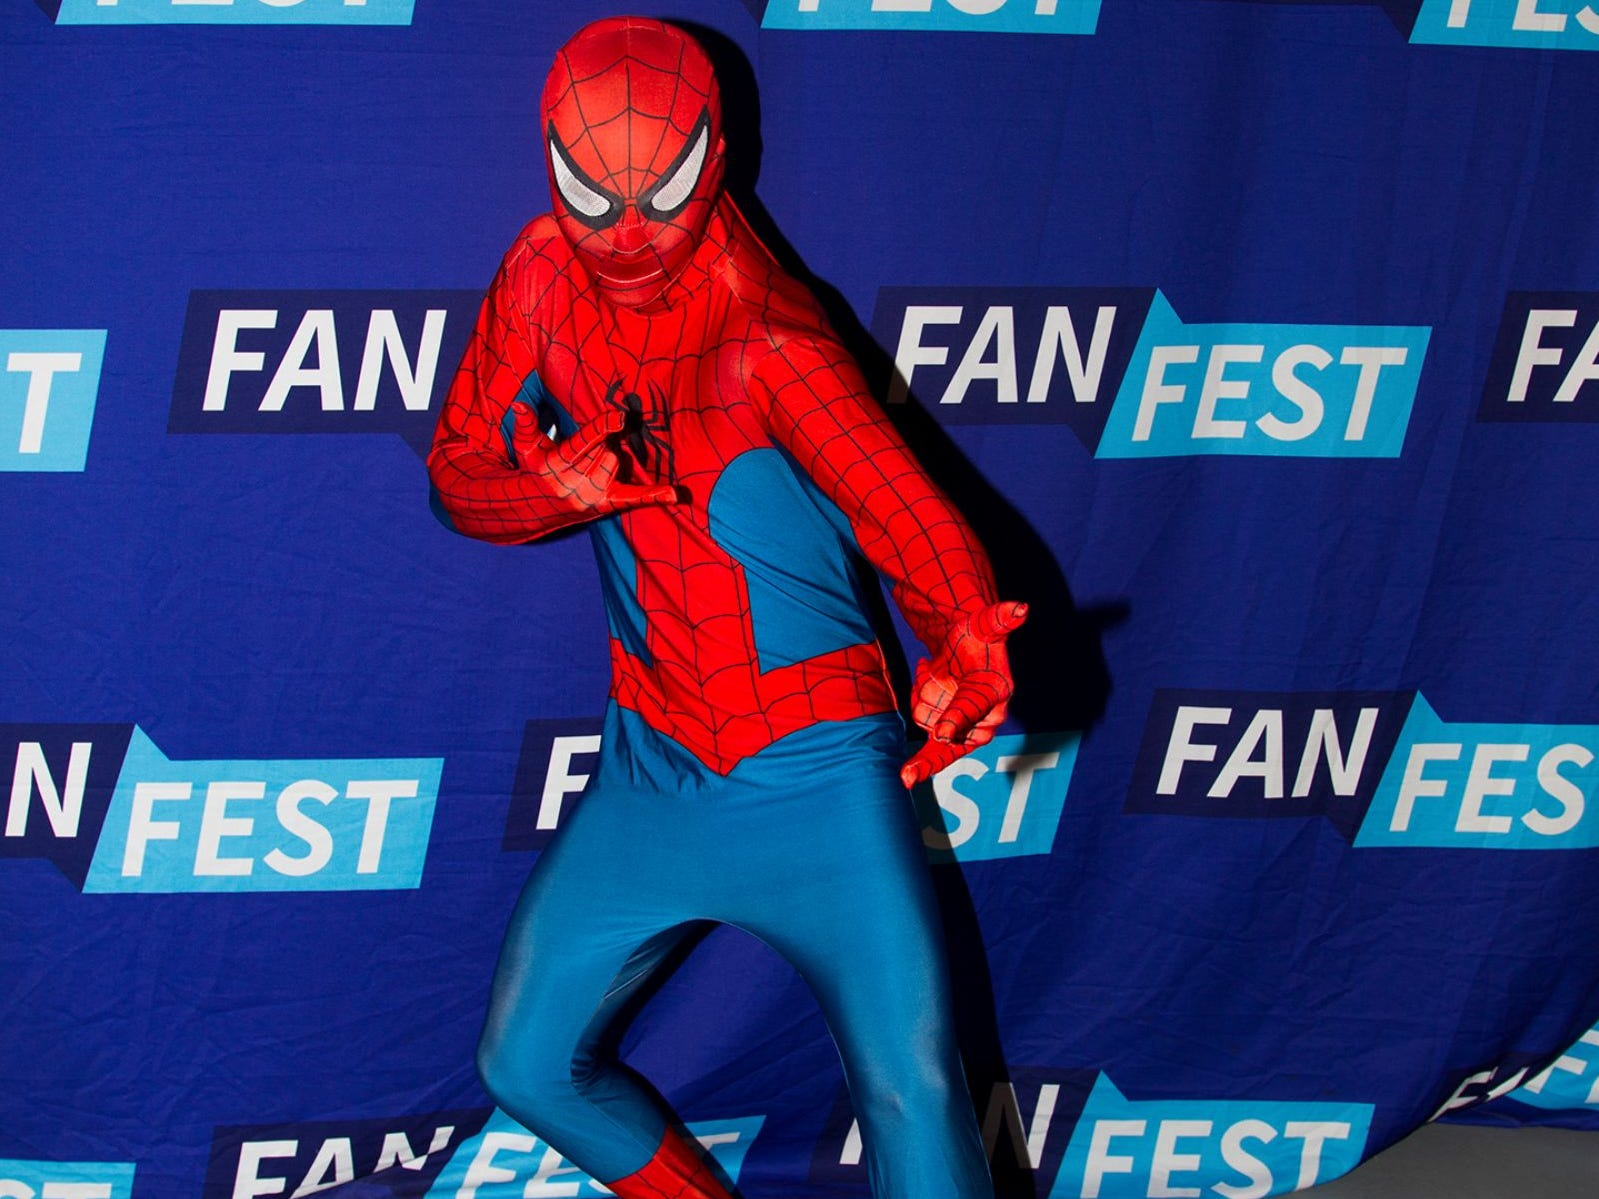 Spider-Man. The 2018 Heroes and Villains Fan Fest took place at the New Jersey Convention & Expo Center. 09/09/2018